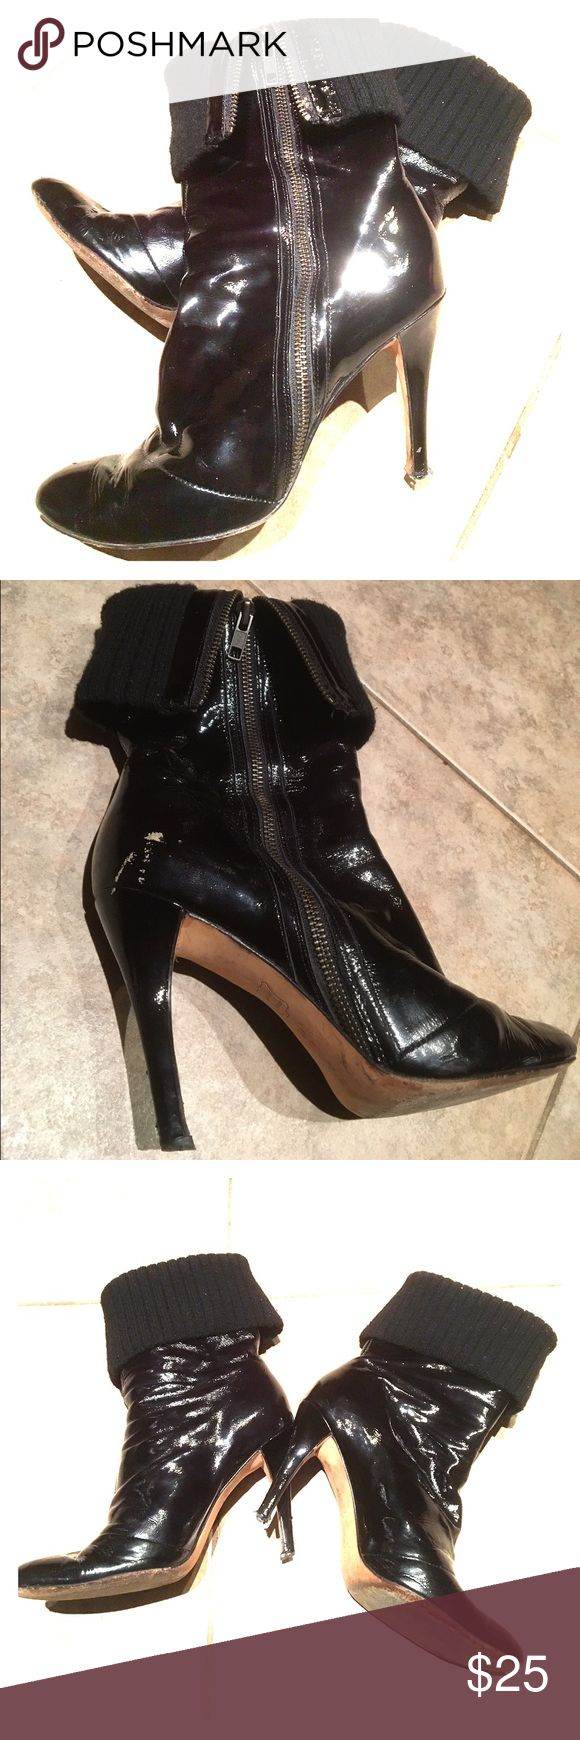 """👠PATENT LEATHER STILETTO BOOTIES Gorgeous Boutique 9 Black Patent Leather Stiletto Cuff Booties, Size 7.5. Approx. 4"""" heel. Leather upper, leather sole, fabric cuff. Can be worn folded down or up. Zipper goes on the outside. There is some wear on the right boot by the top of the heel, as shown in the 2nd picture & tips of heels need to be replaced. Can easily be fixed by a shoemaker. These were purchased at Nordstrom. Amazing boots! Smoke/pet free. Boutique 9 Shoes Ankle Boots & Booties"""